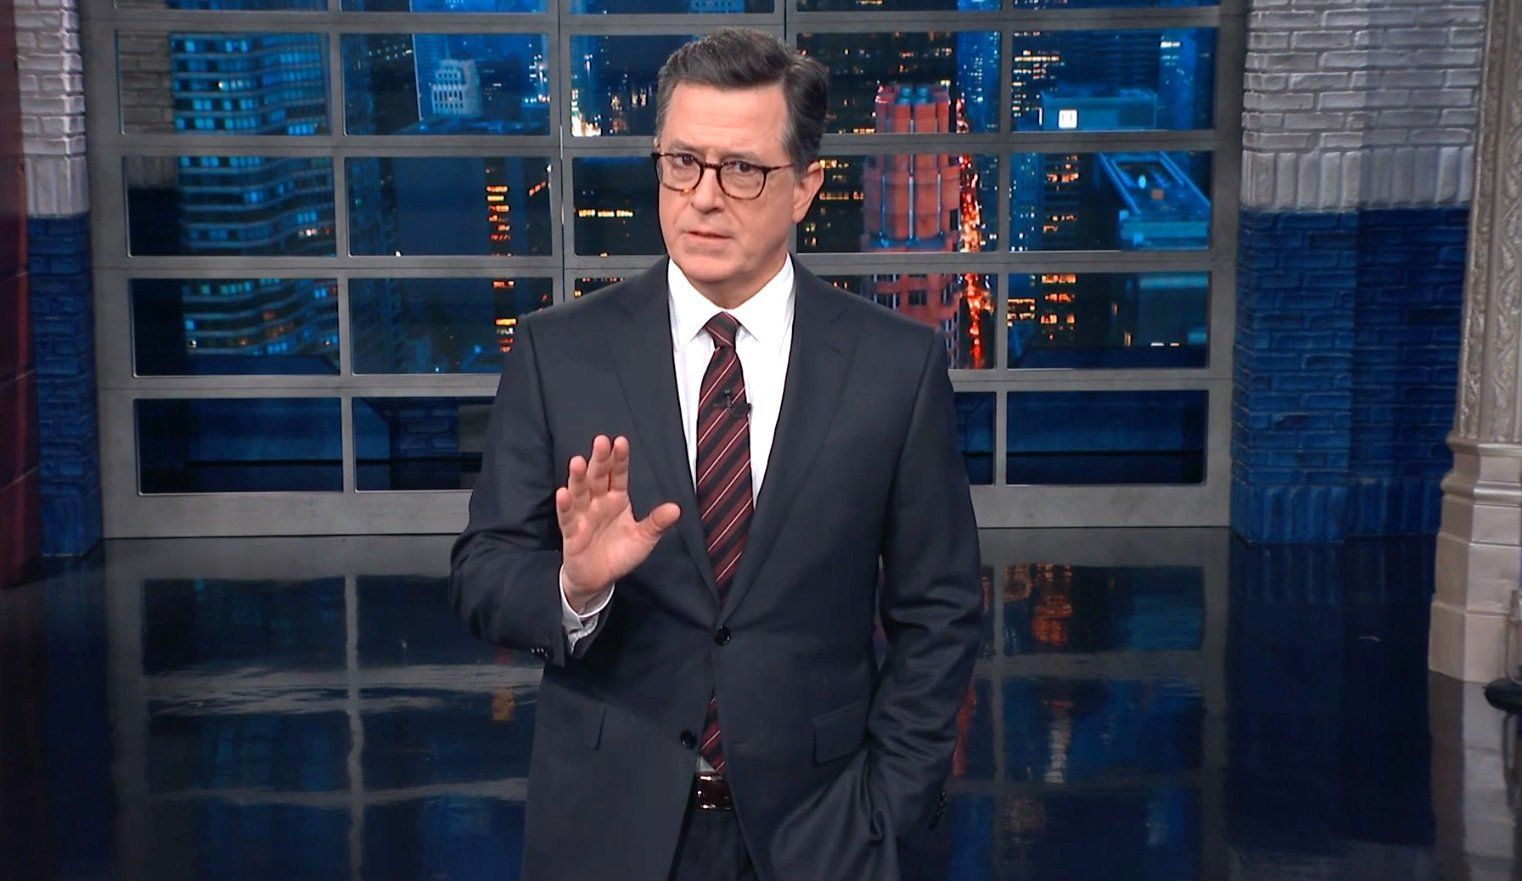 Colbert Turns Serious With Stirring Call For Unity In Wake Of Mass